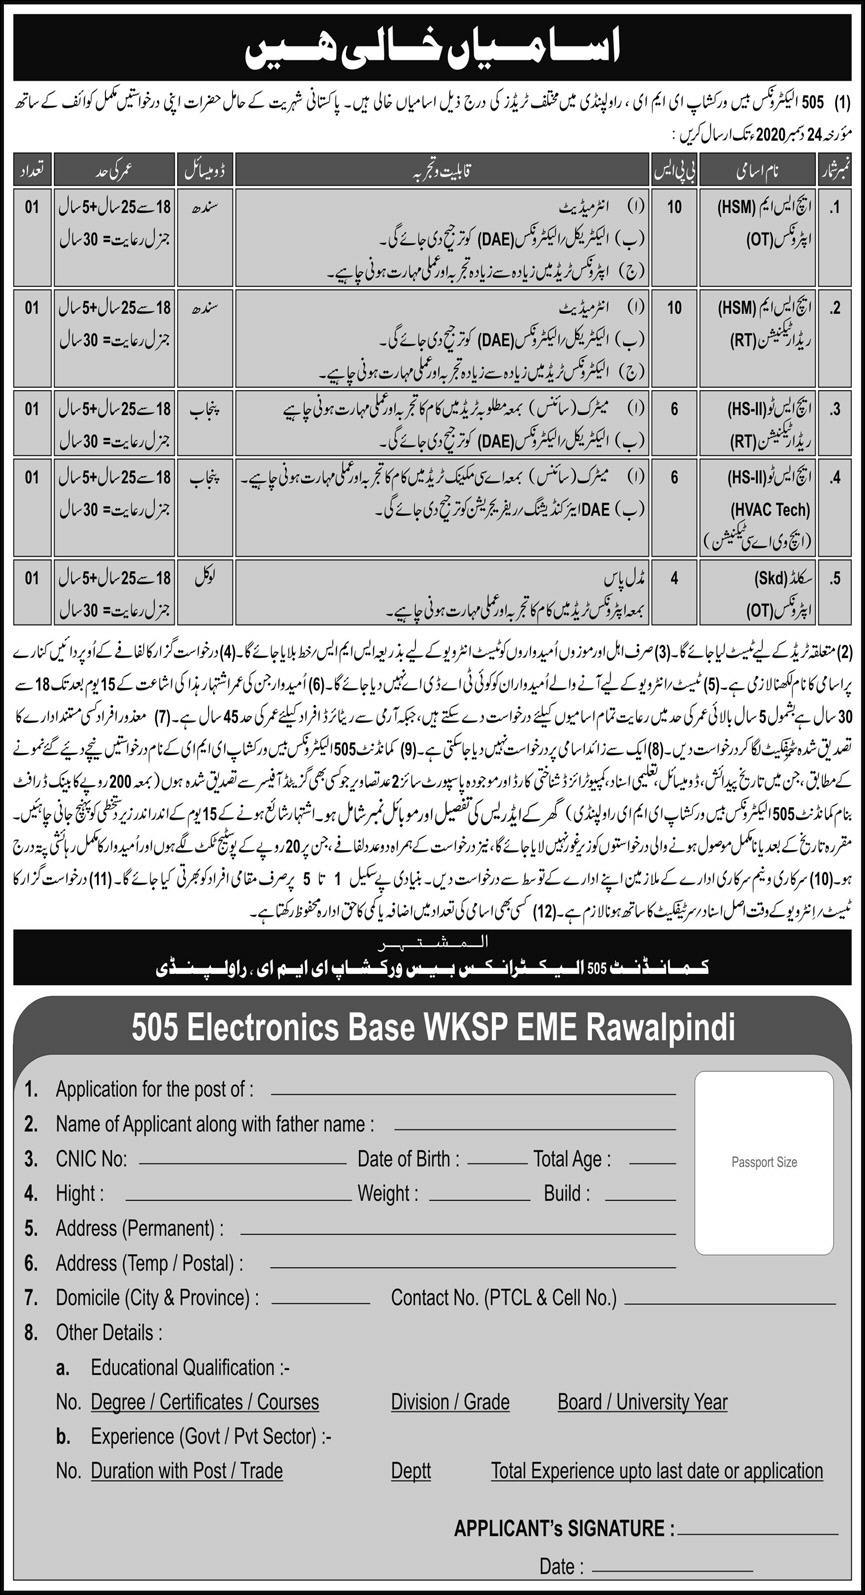 505 Electronics Base Workshop EME Rawalpindi Jobs December 2020